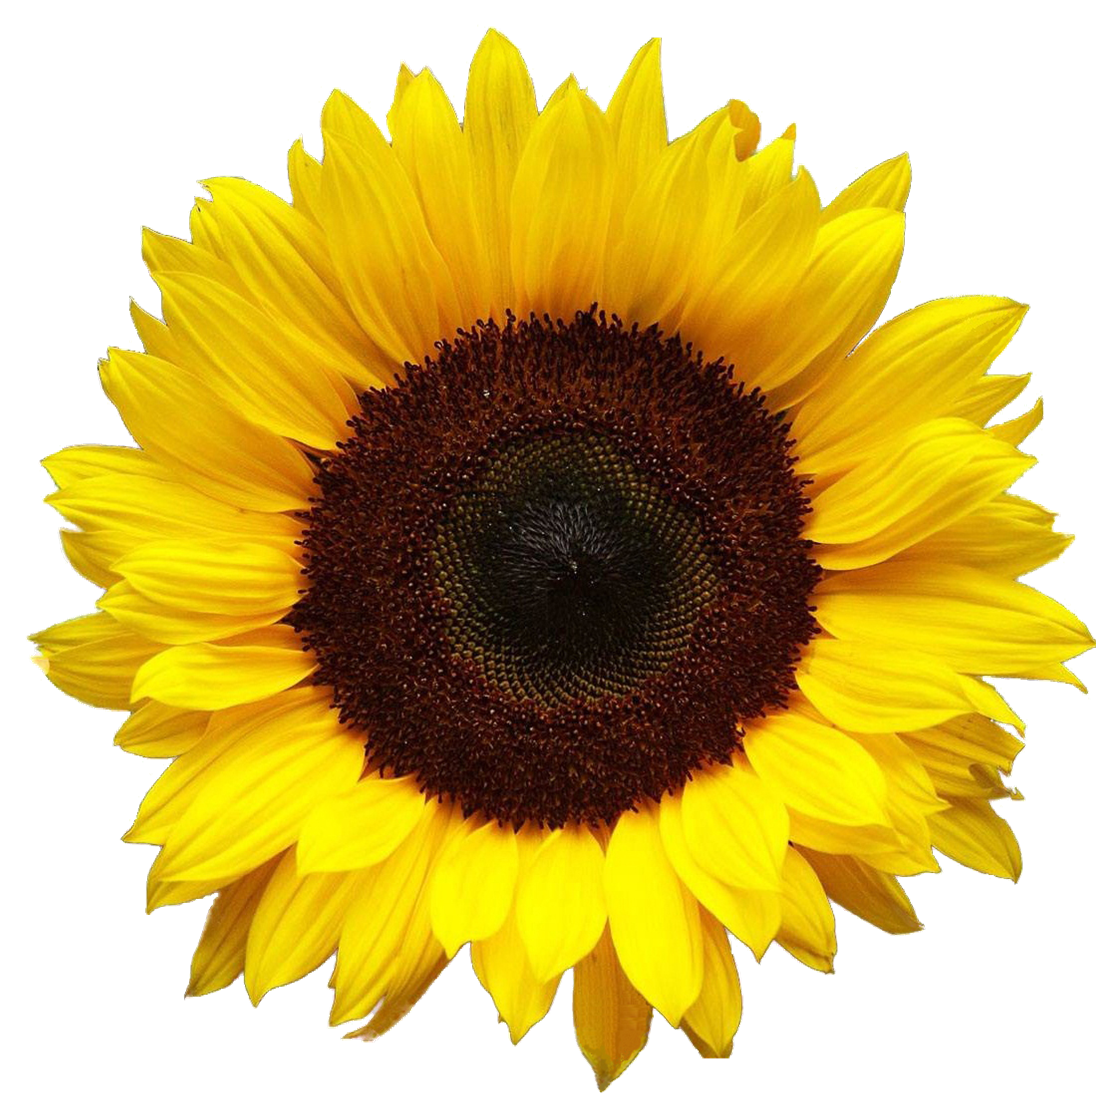 Sunflower Png - Free Icons and PNG Backgrounds